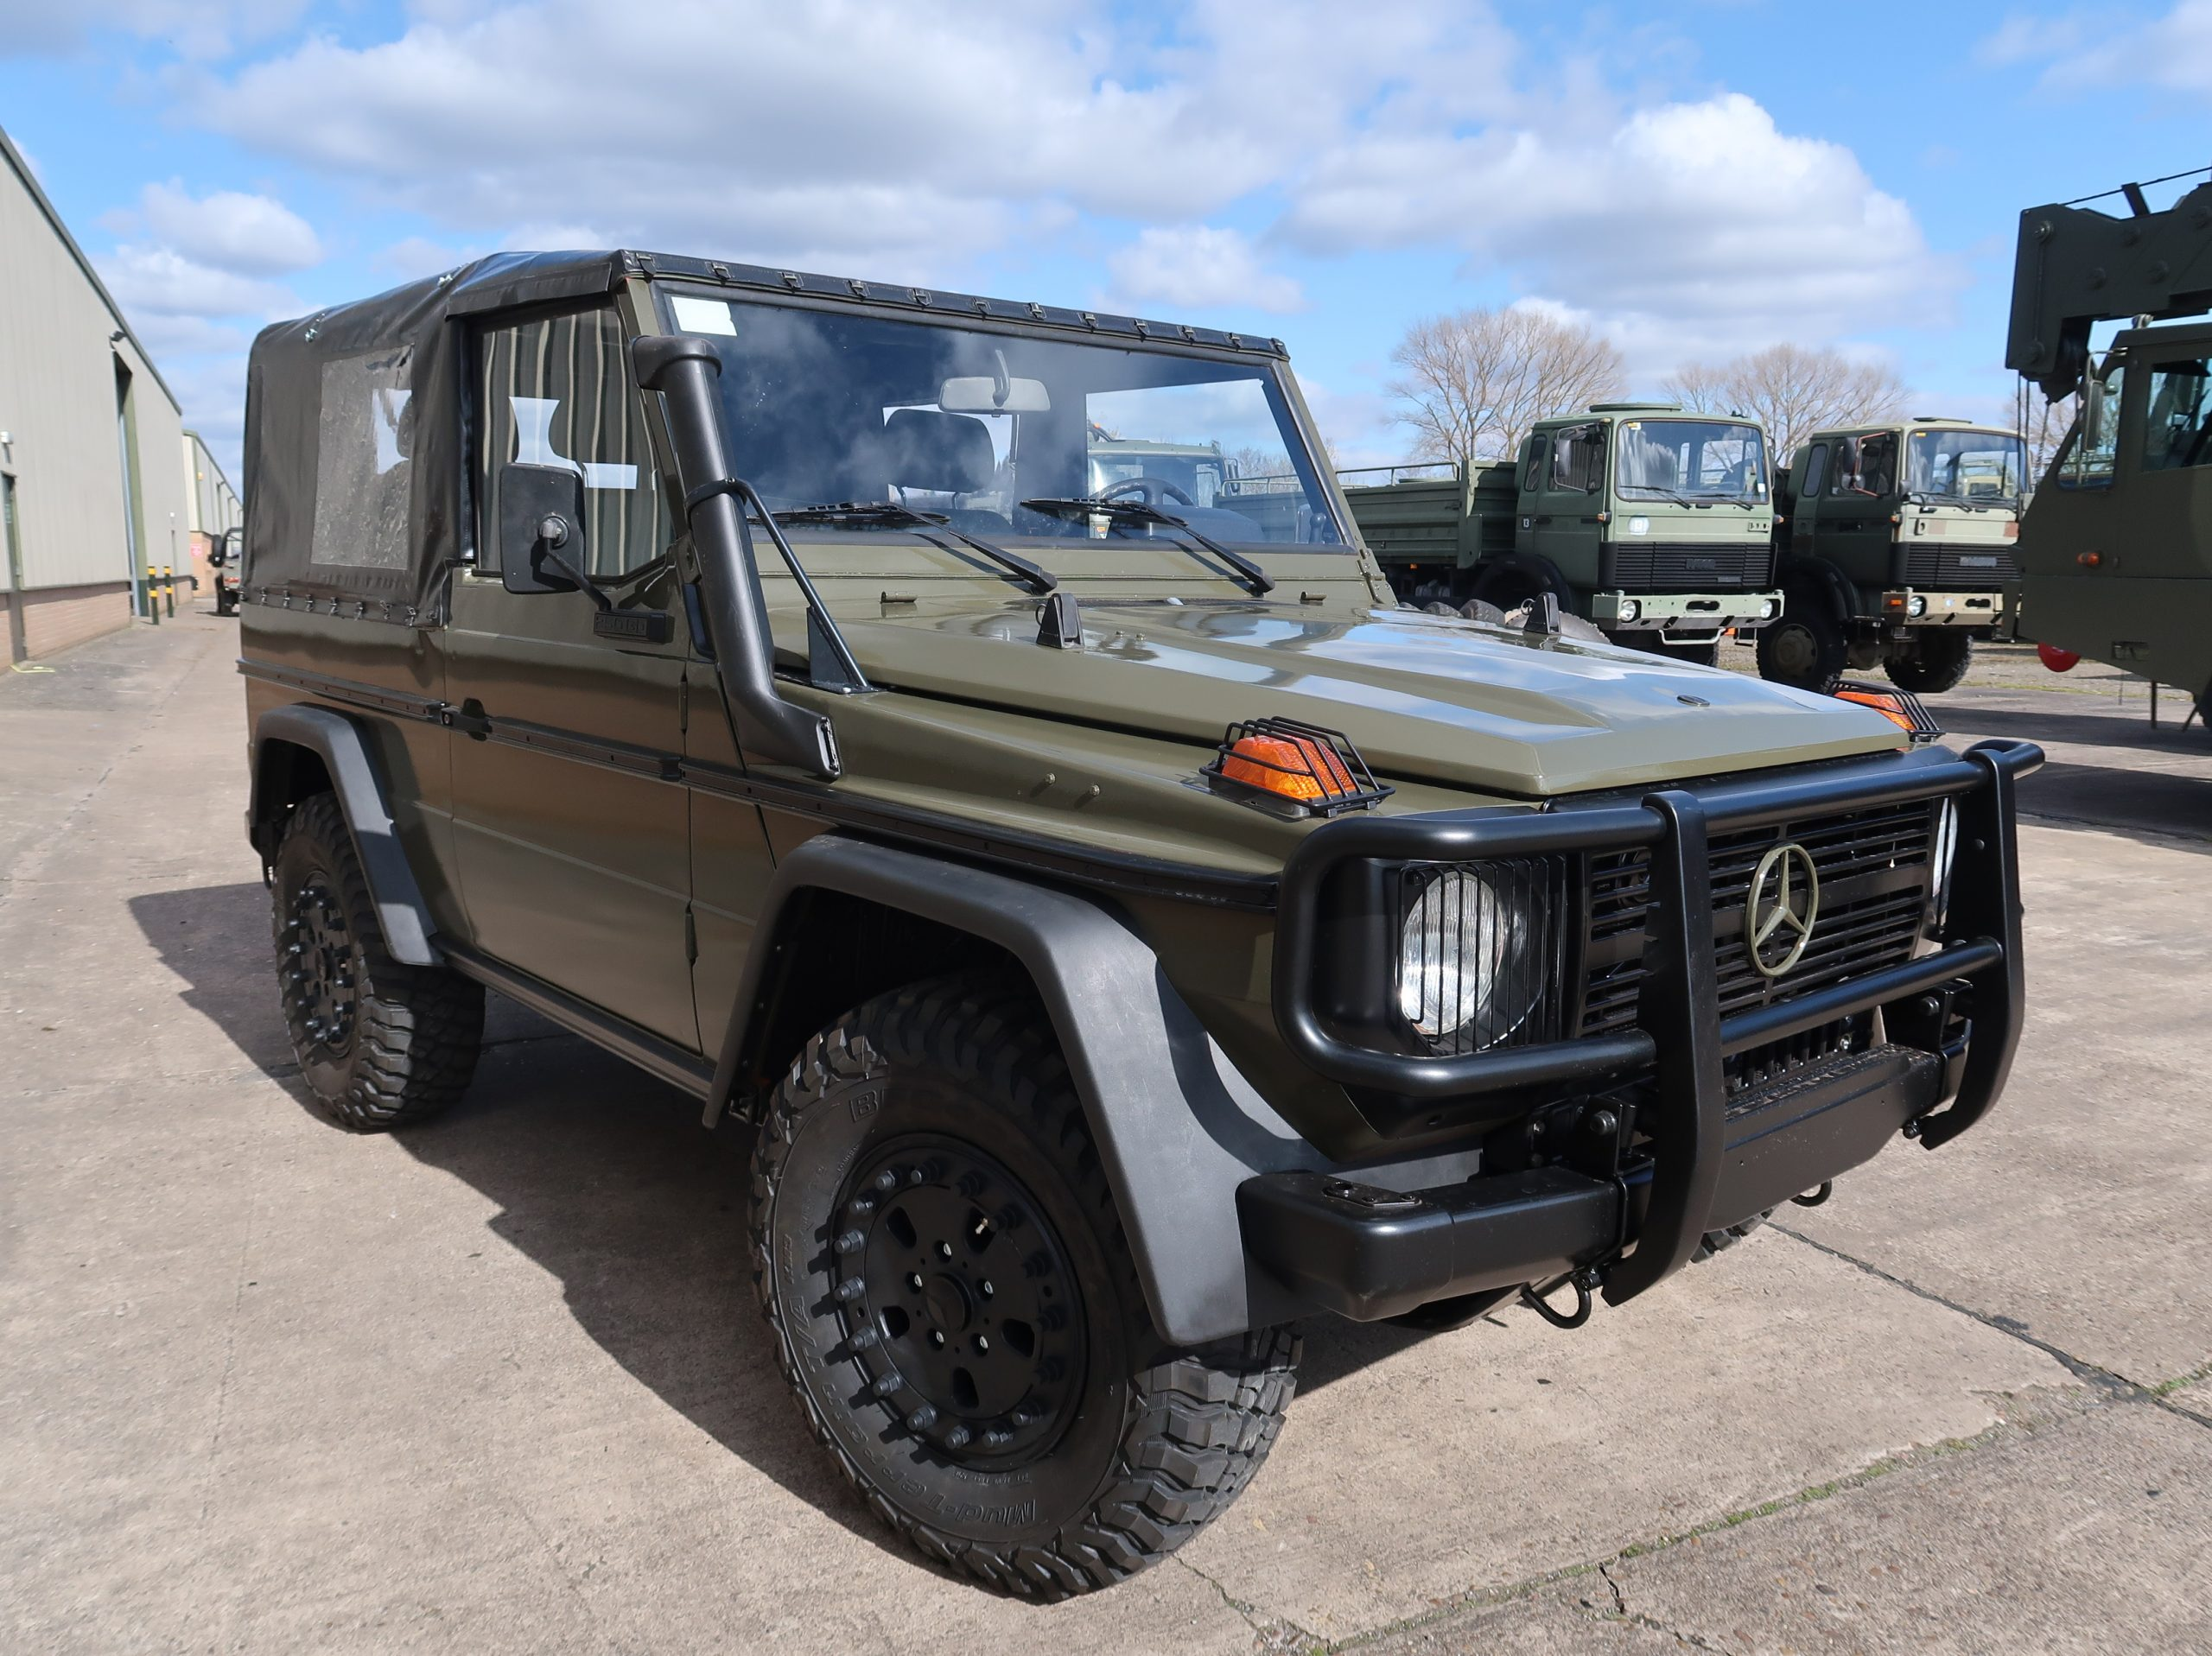 Mercedes G Wagon 250 4X4 | Military Land Rovers 90, 110,130, Range Rovers, Mercedes for Sale